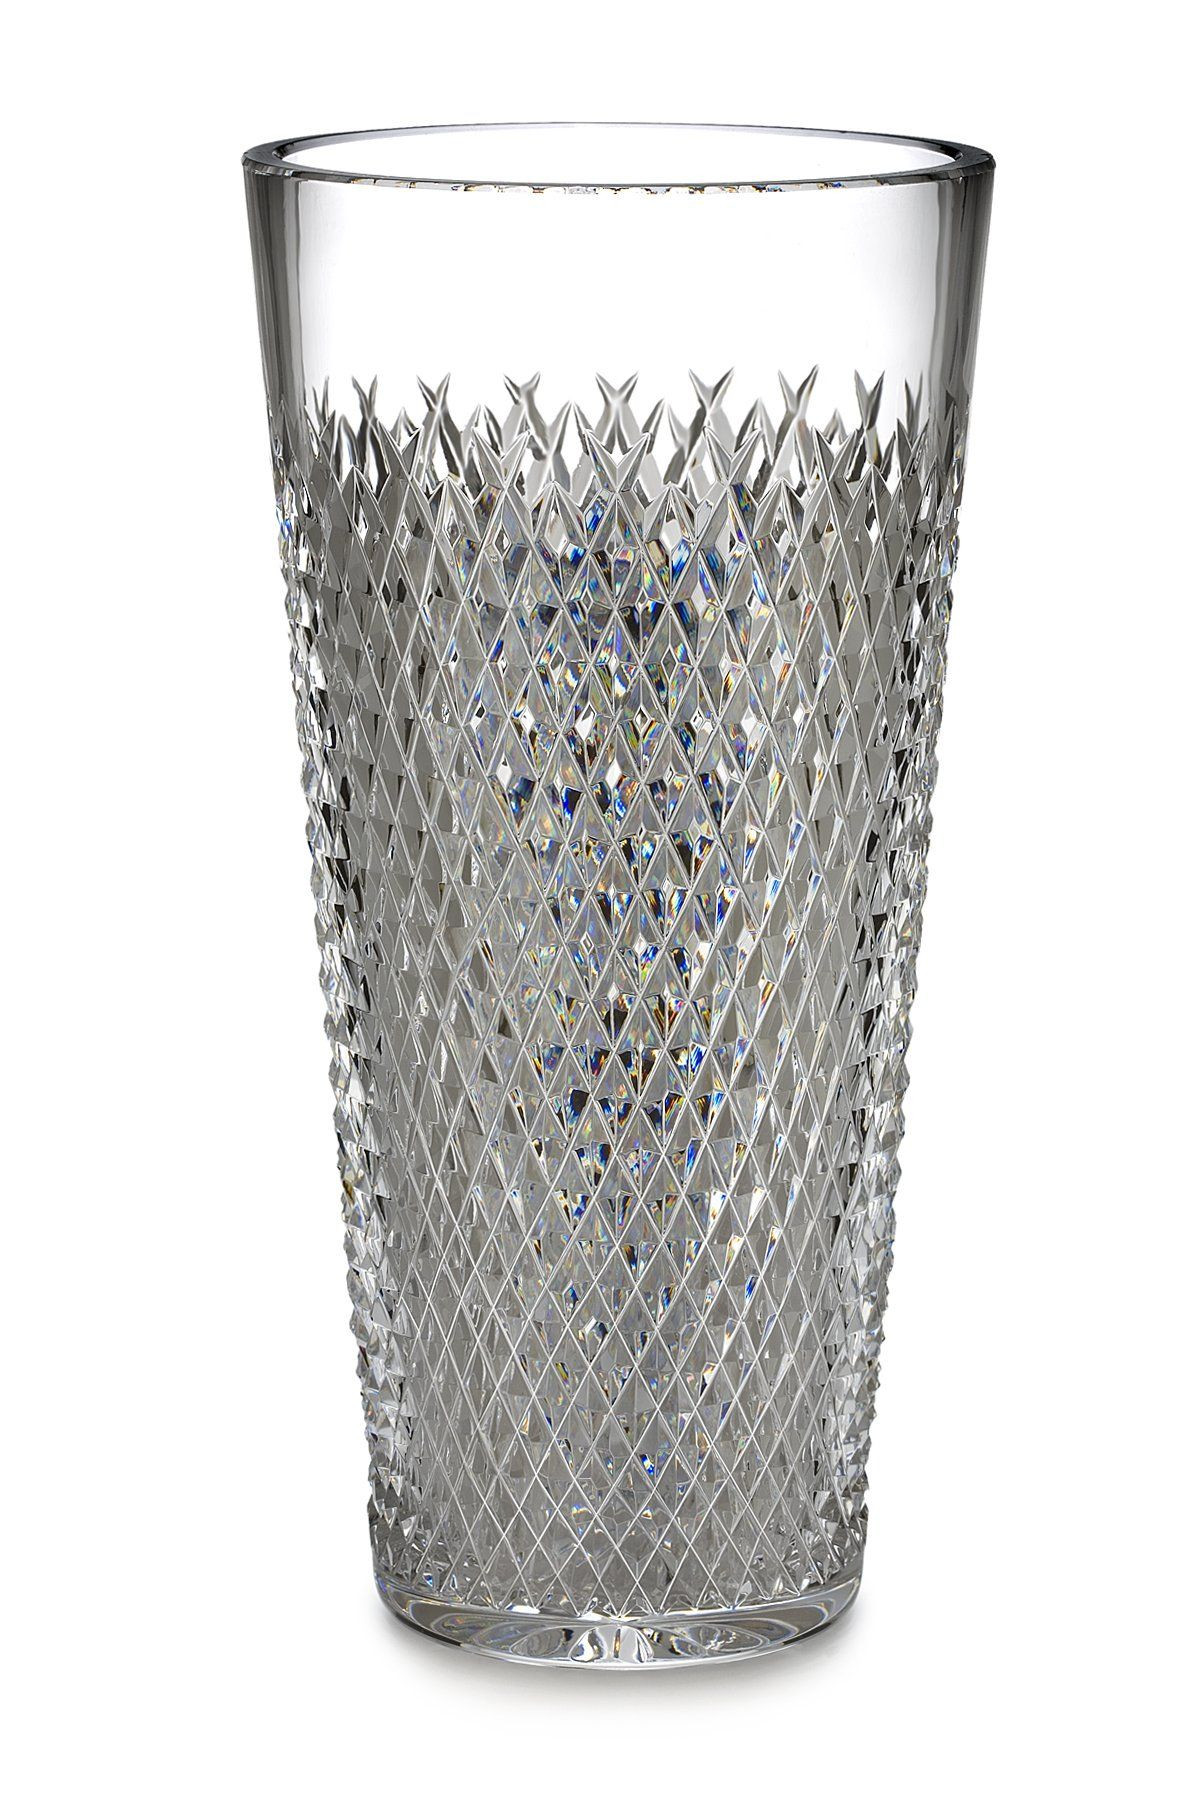 large waterford vase of waterford alana 12 inch vase 12 inch vase crystal alana vases inside waterford alana 12 inch vase 12 inch vase crystal alana